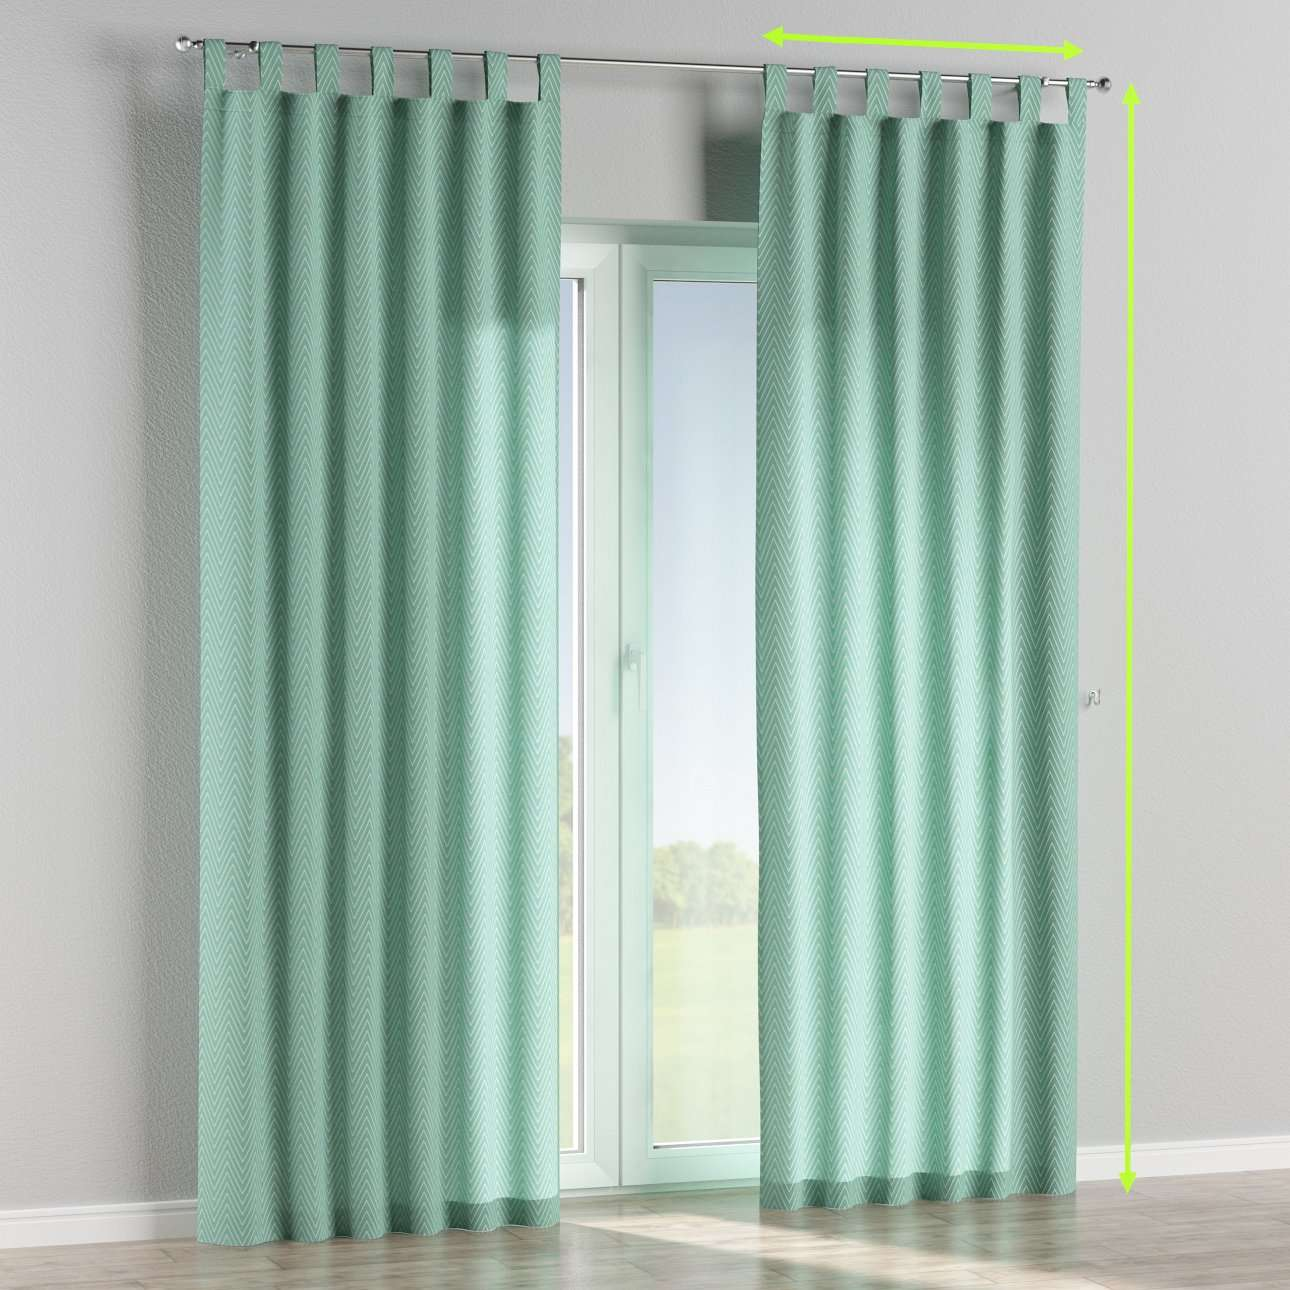 Tab top lined curtains in collection Brooklyn, fabric: 137-90